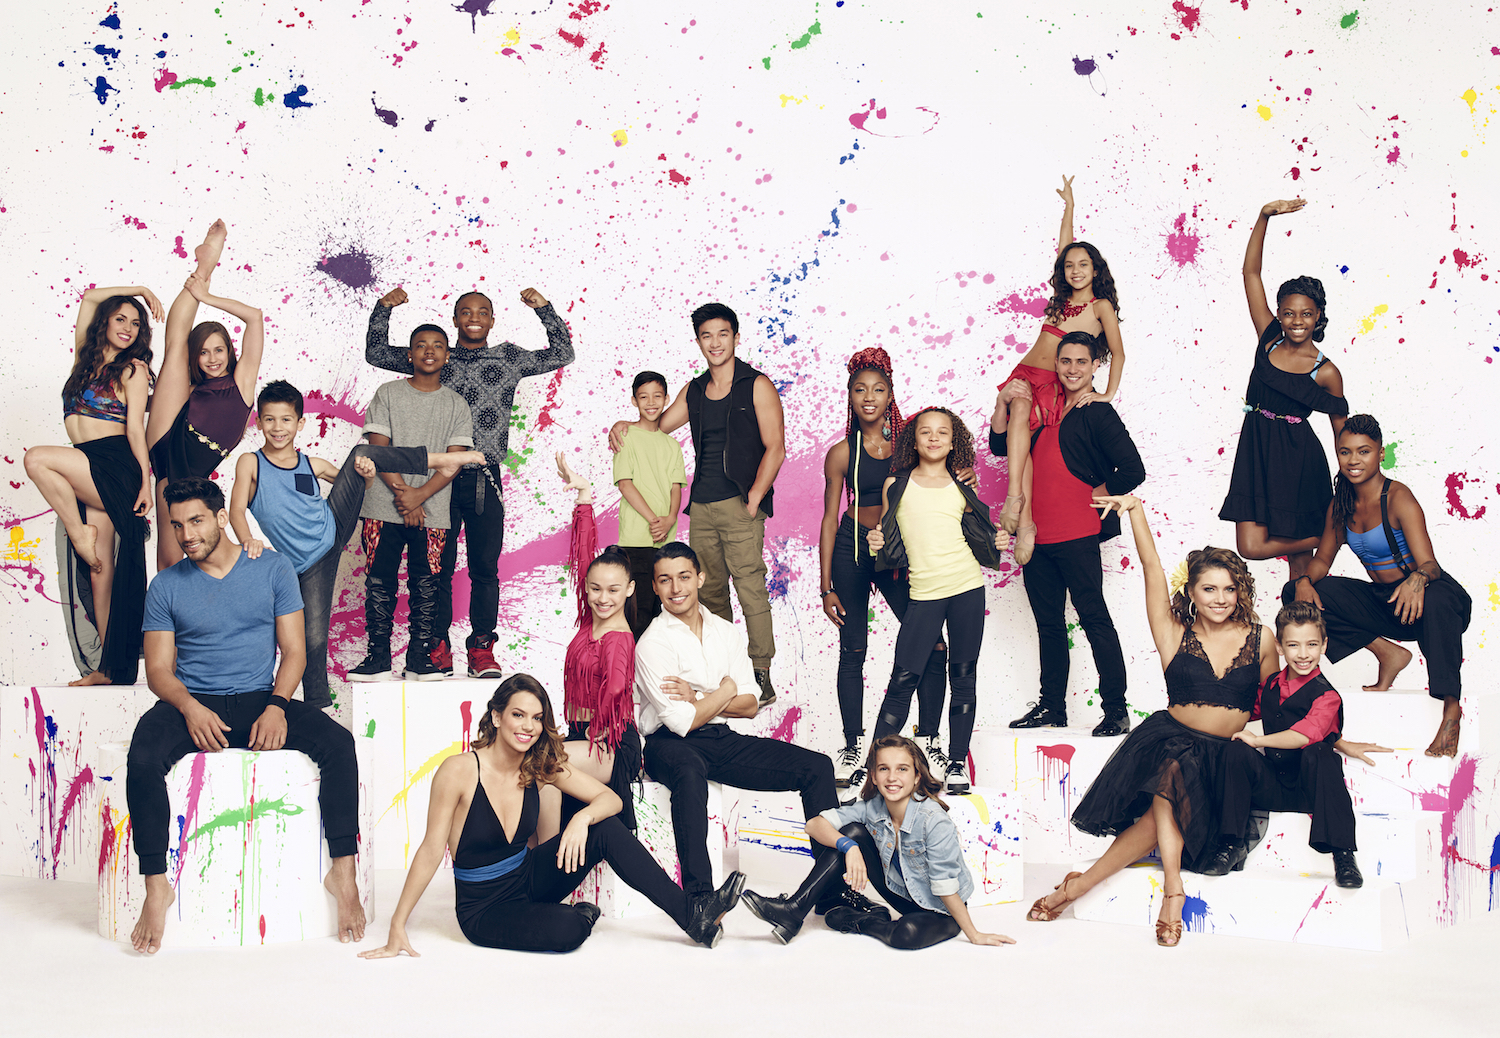 sytycd meet the top 20 song list